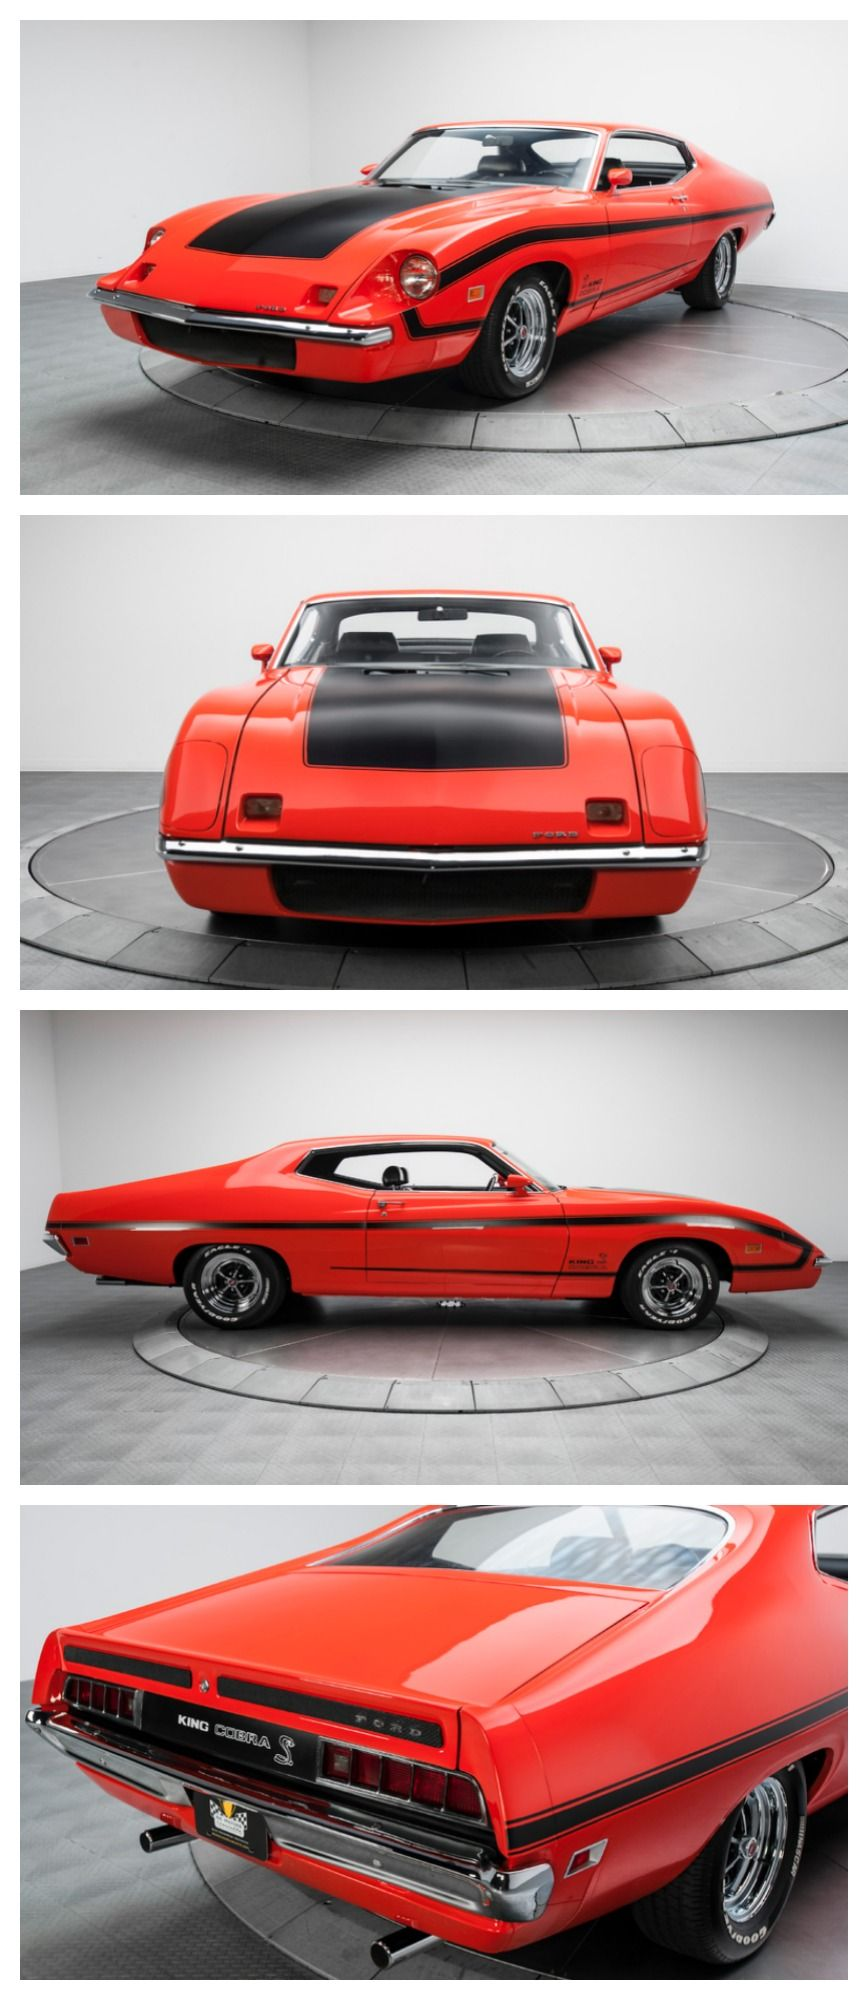 Meet Muscle Car Royalty: The Ford Torino King Cobra. #ThrowbackThursday